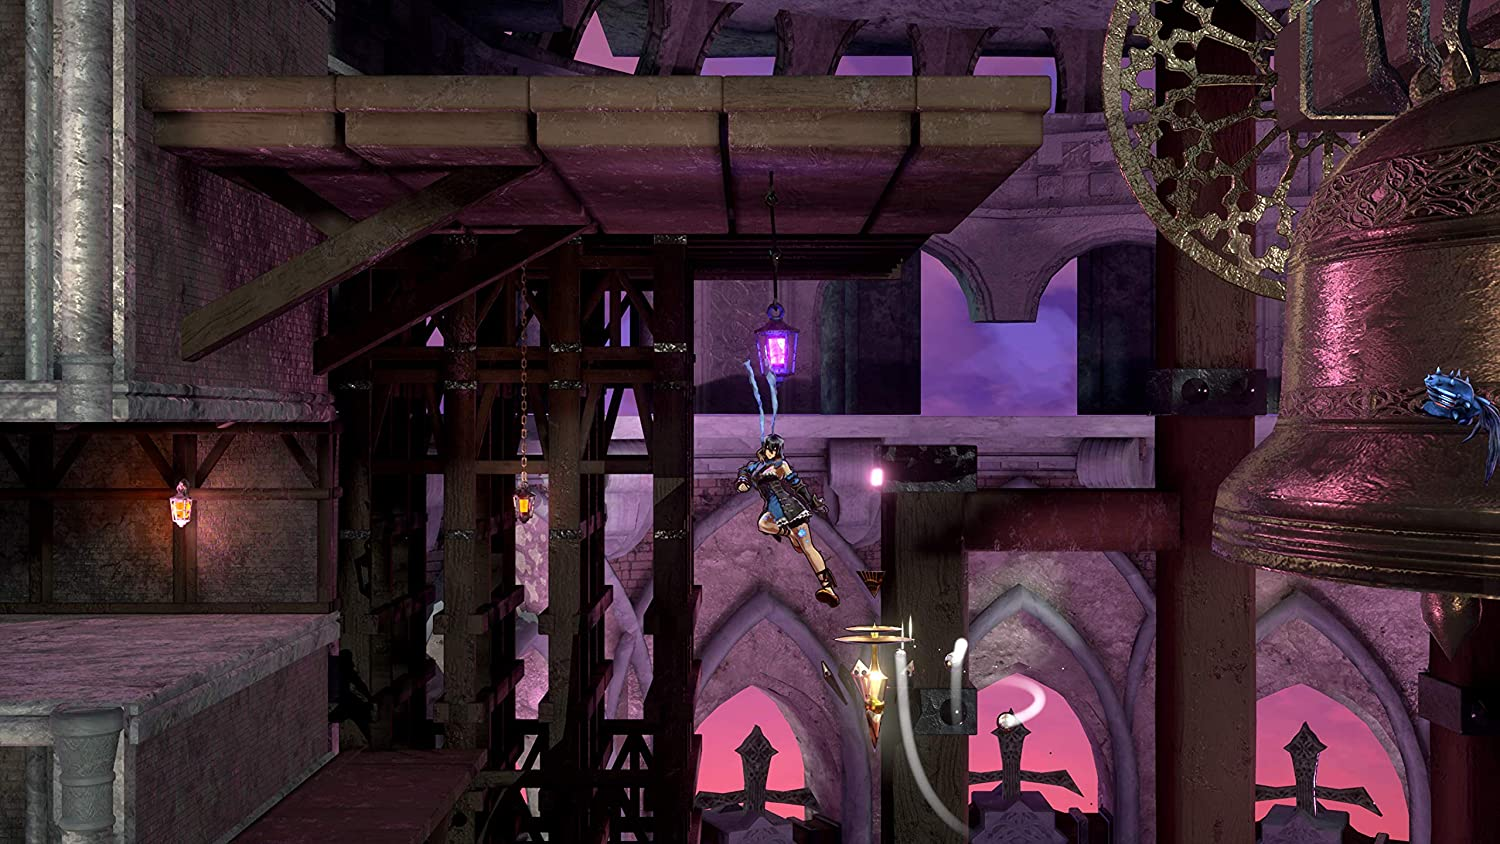 Amazon.com: Bloodstained: Ritual of the Night - Nintendo ...